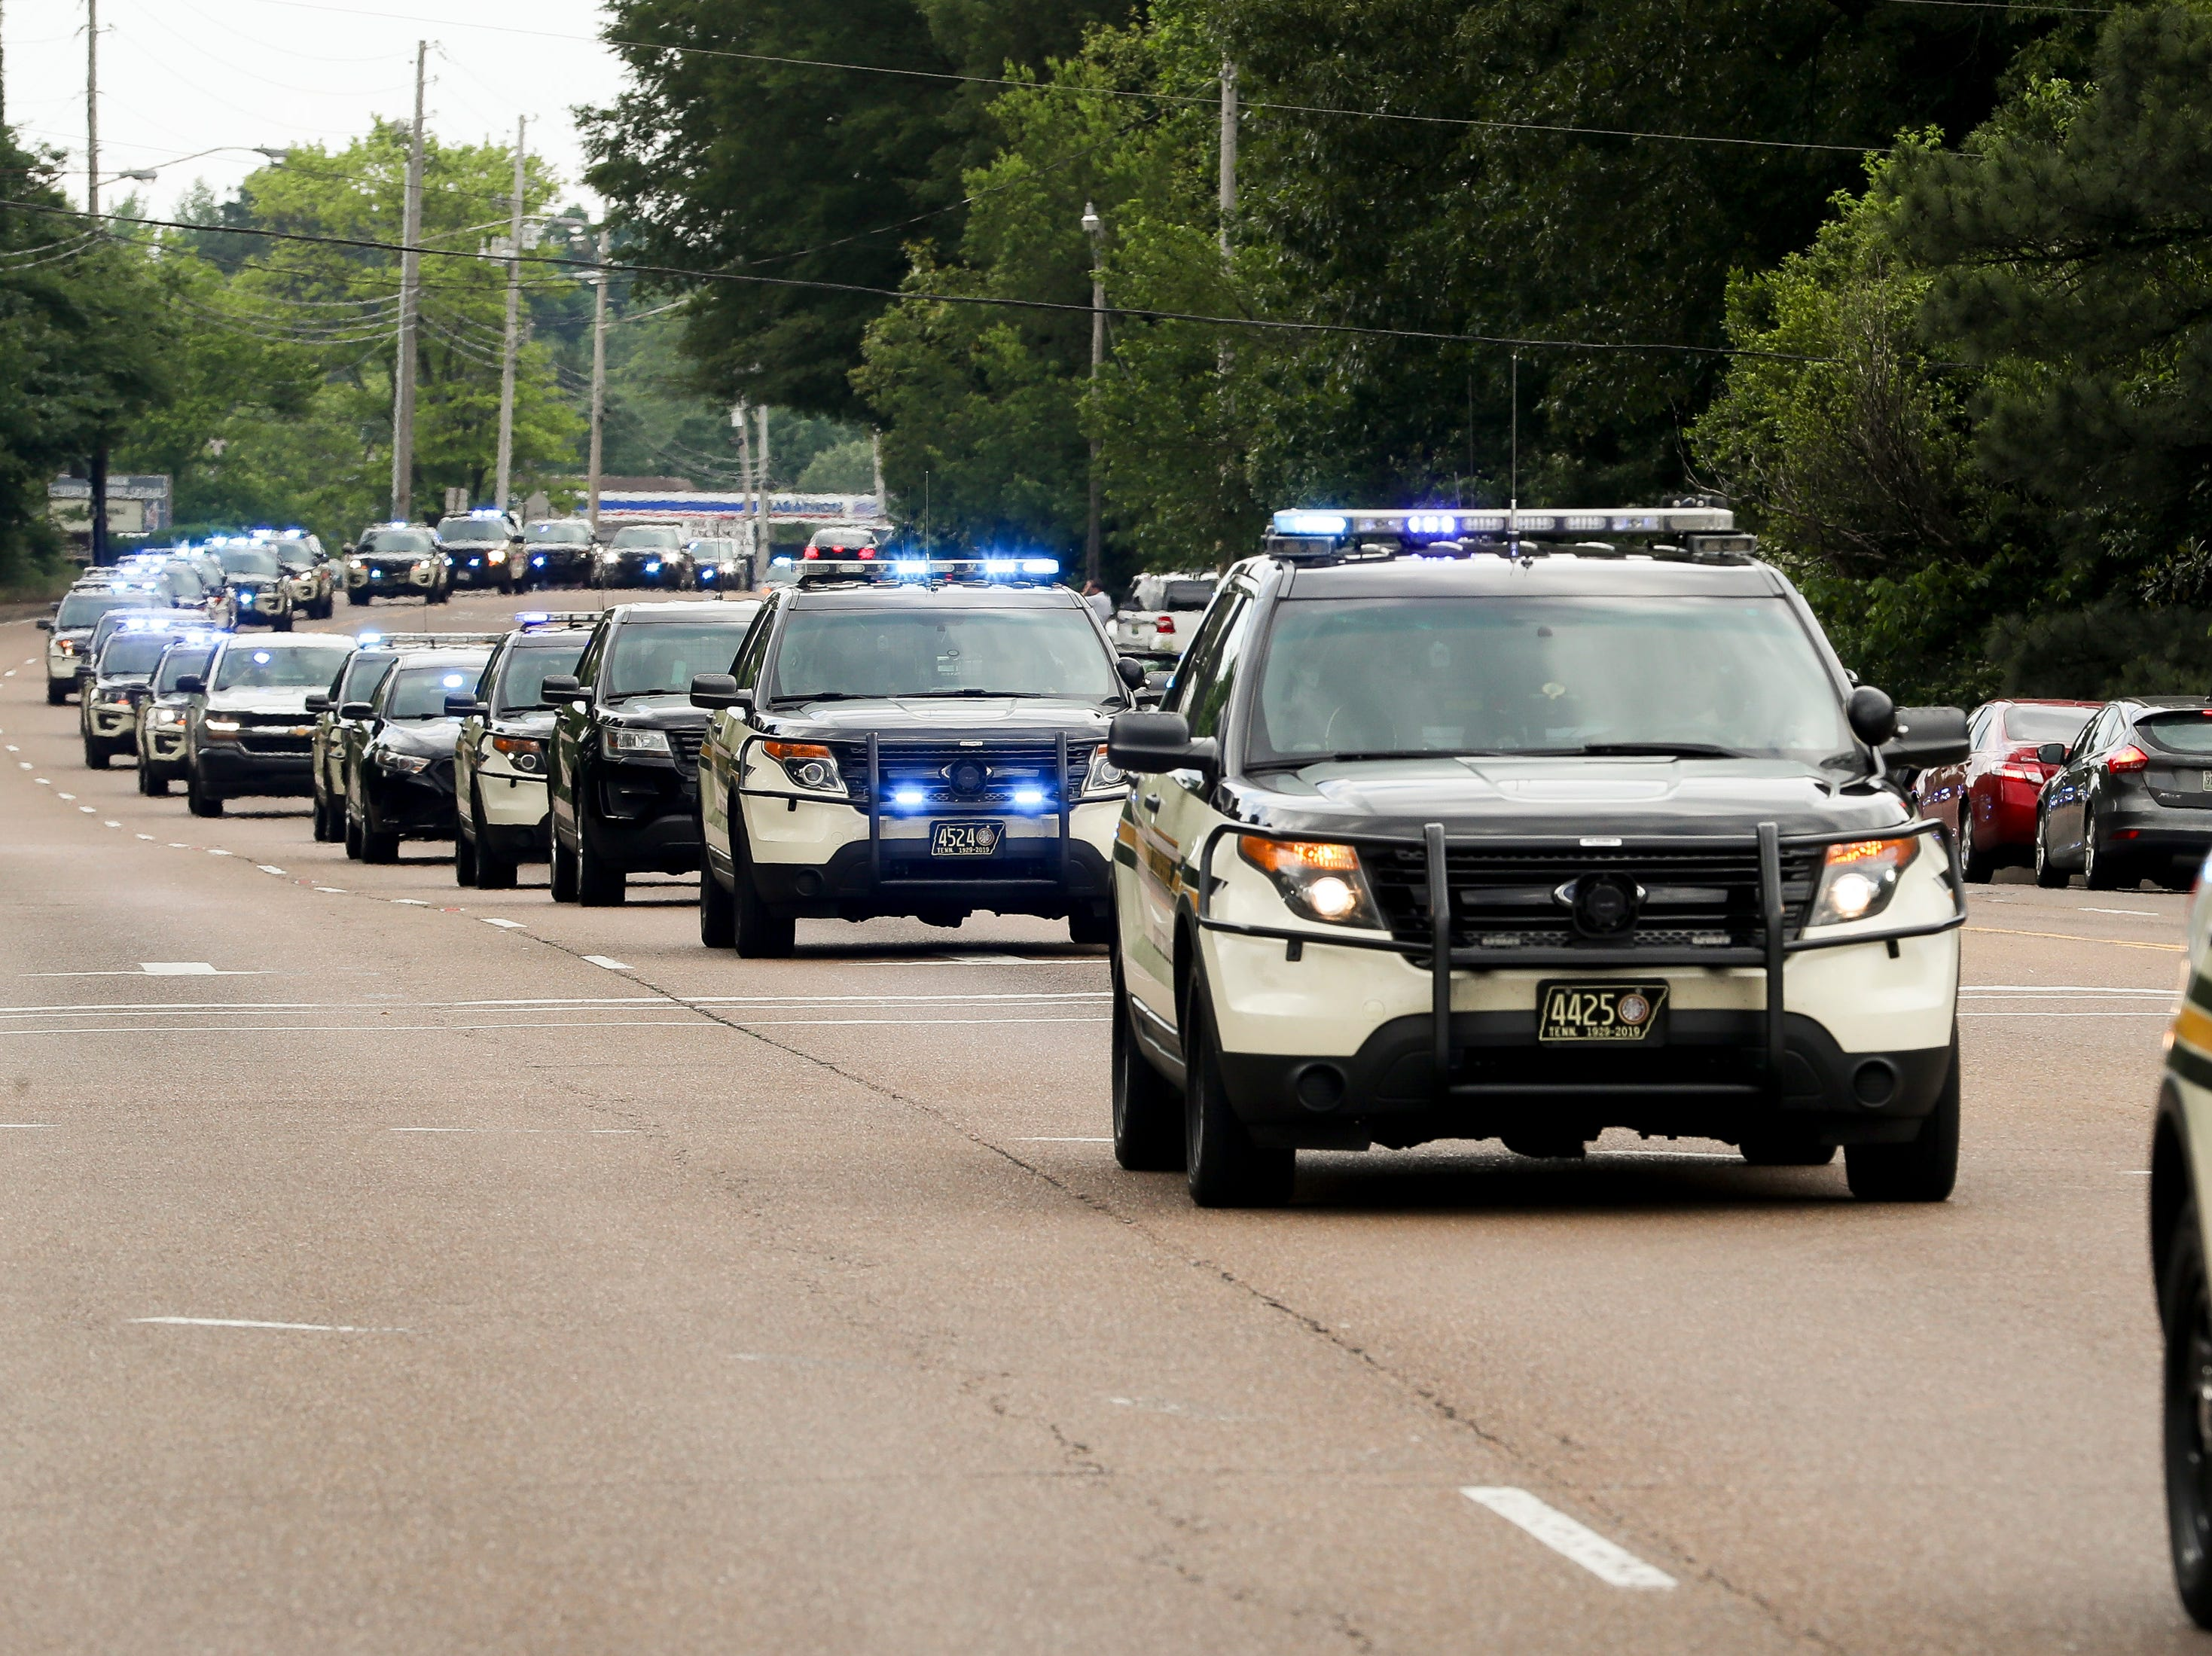 The funeral procession for Tennessee State Trooper Matthew Gatti passes down U.S. Route 45 in Jackson, Tenn., Monday, May 13, 2019. Gatti died in the line of duty in an accident while responding to a car fire on I-40 in Madison County on May 6.